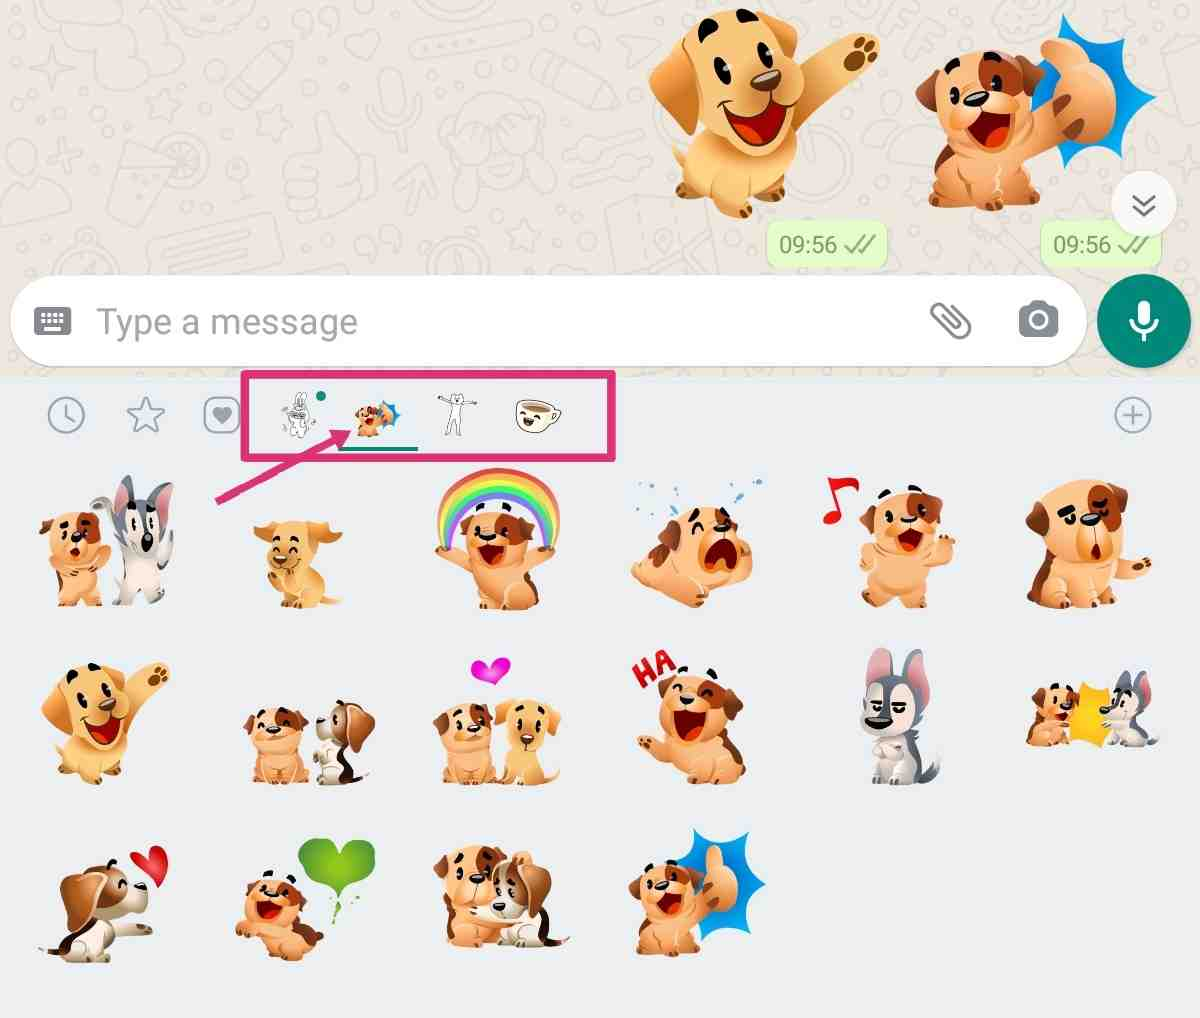 How to Use Animated Stickers in Whatsapp How to send Animated Stickers in Whatsapp